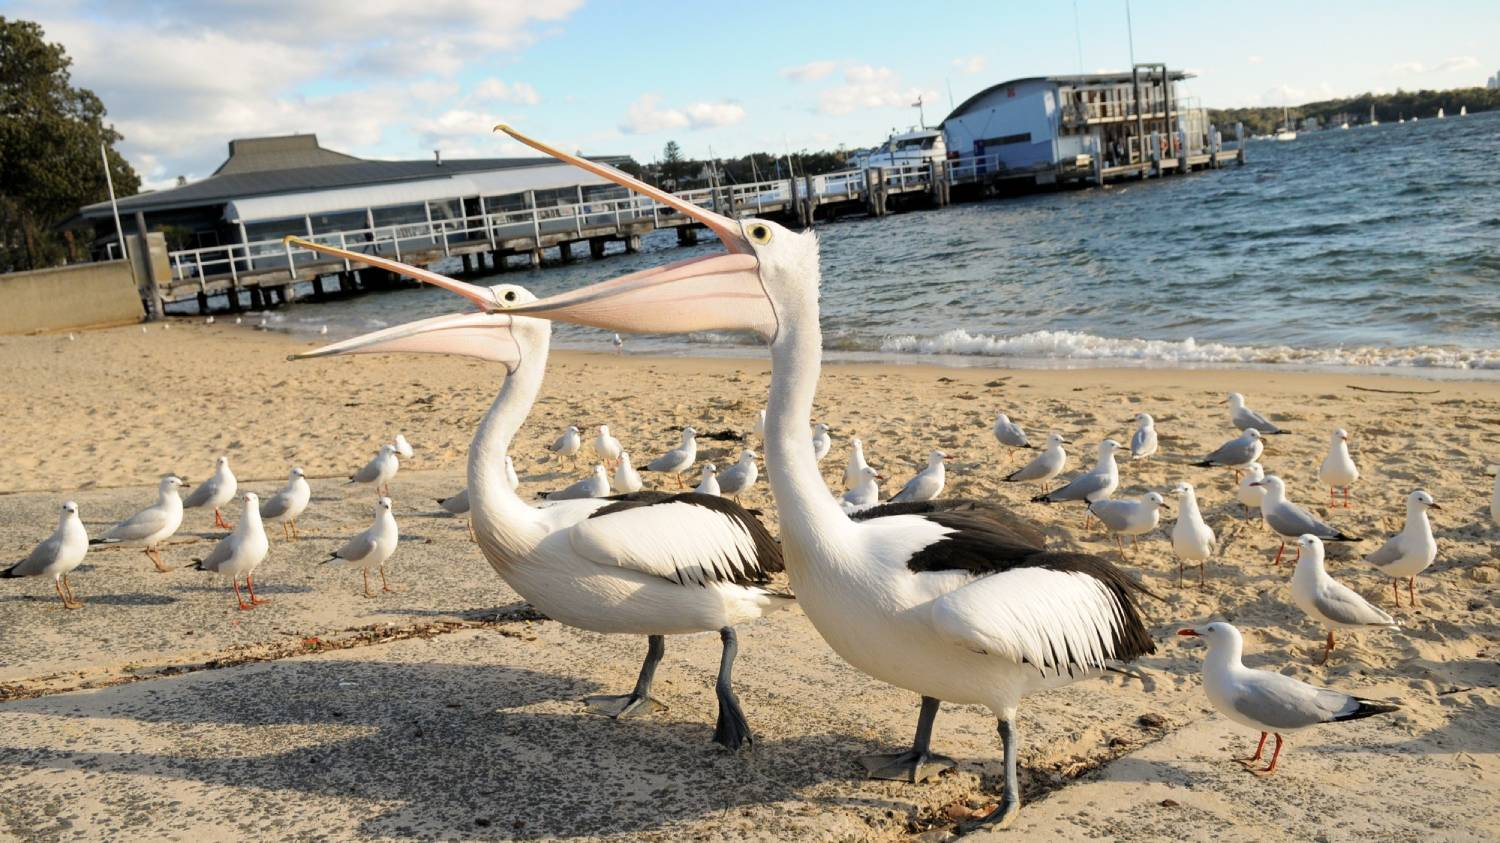 Watsons Bay - Things To Do In Sydney